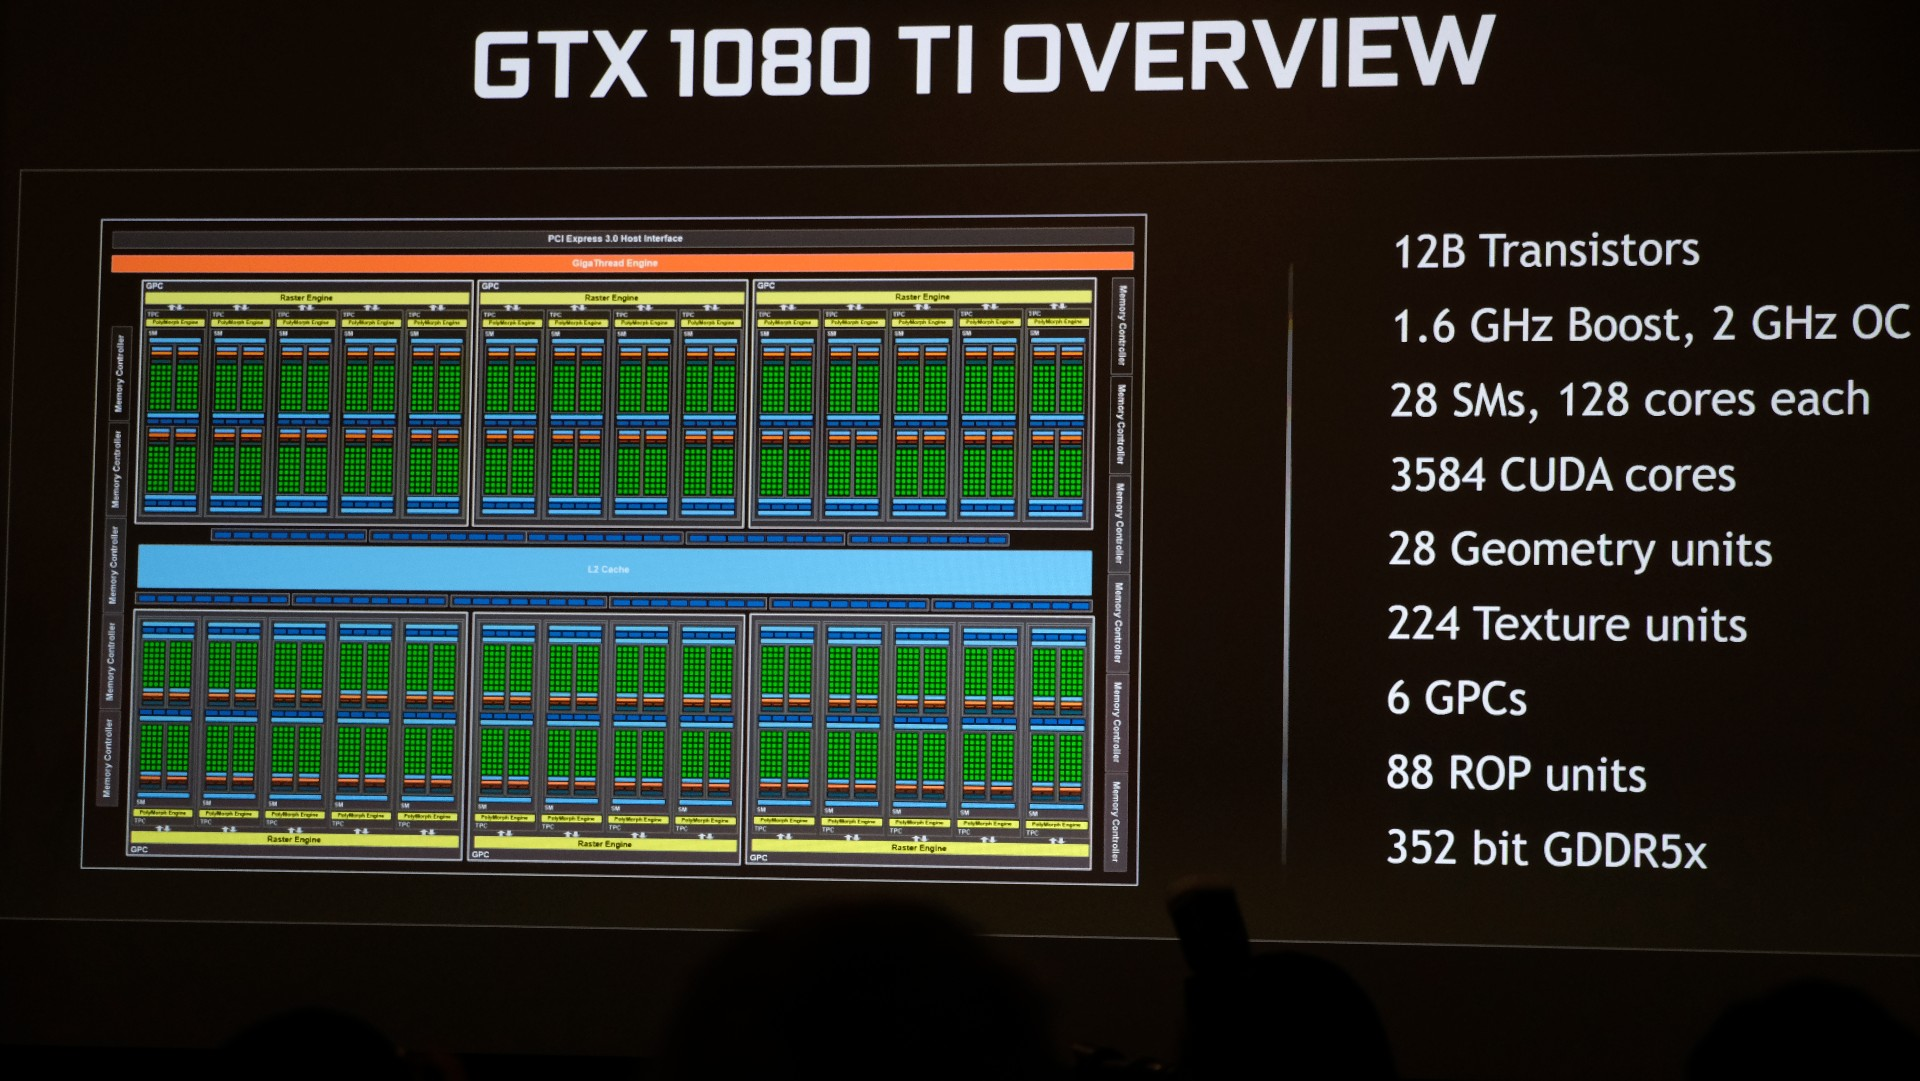 Nvidia GTX 1080 Ti turns the dial to 11 | M&C Recycle Blog